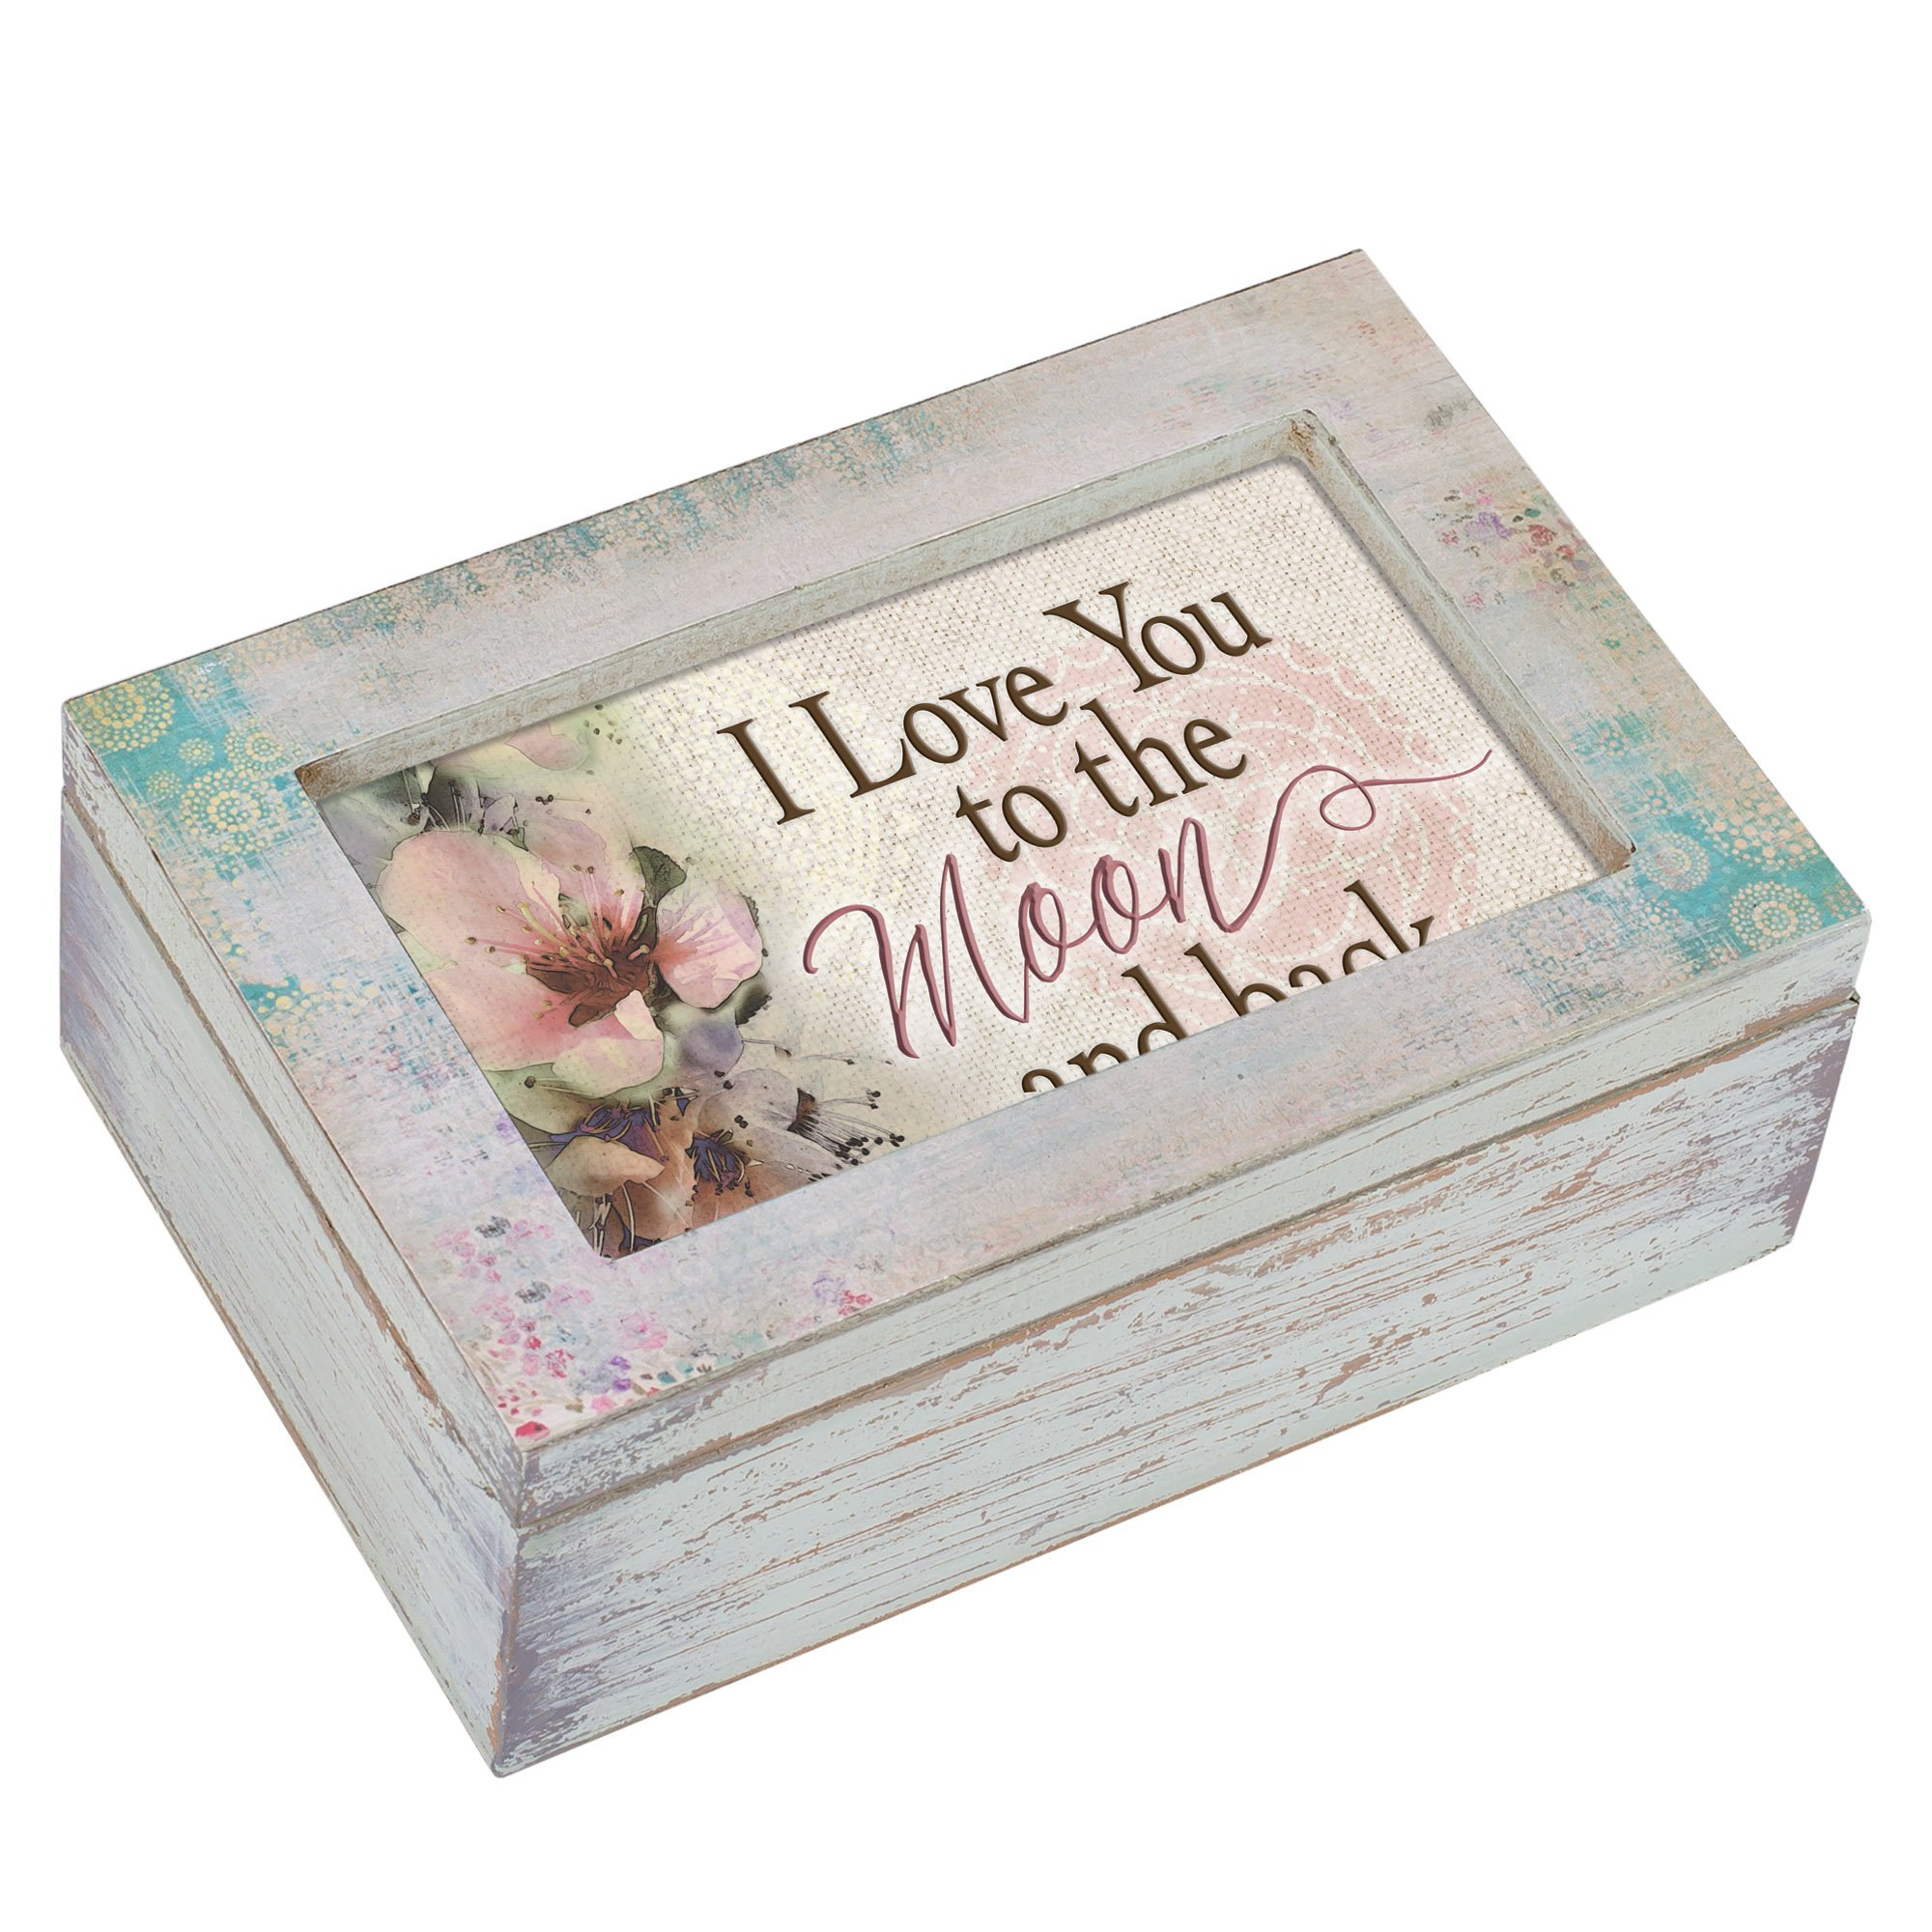 Cottage Garden Love You To the Moon and Back Distressed Wood Petite Decoupage Music Box Plays Edelweiss